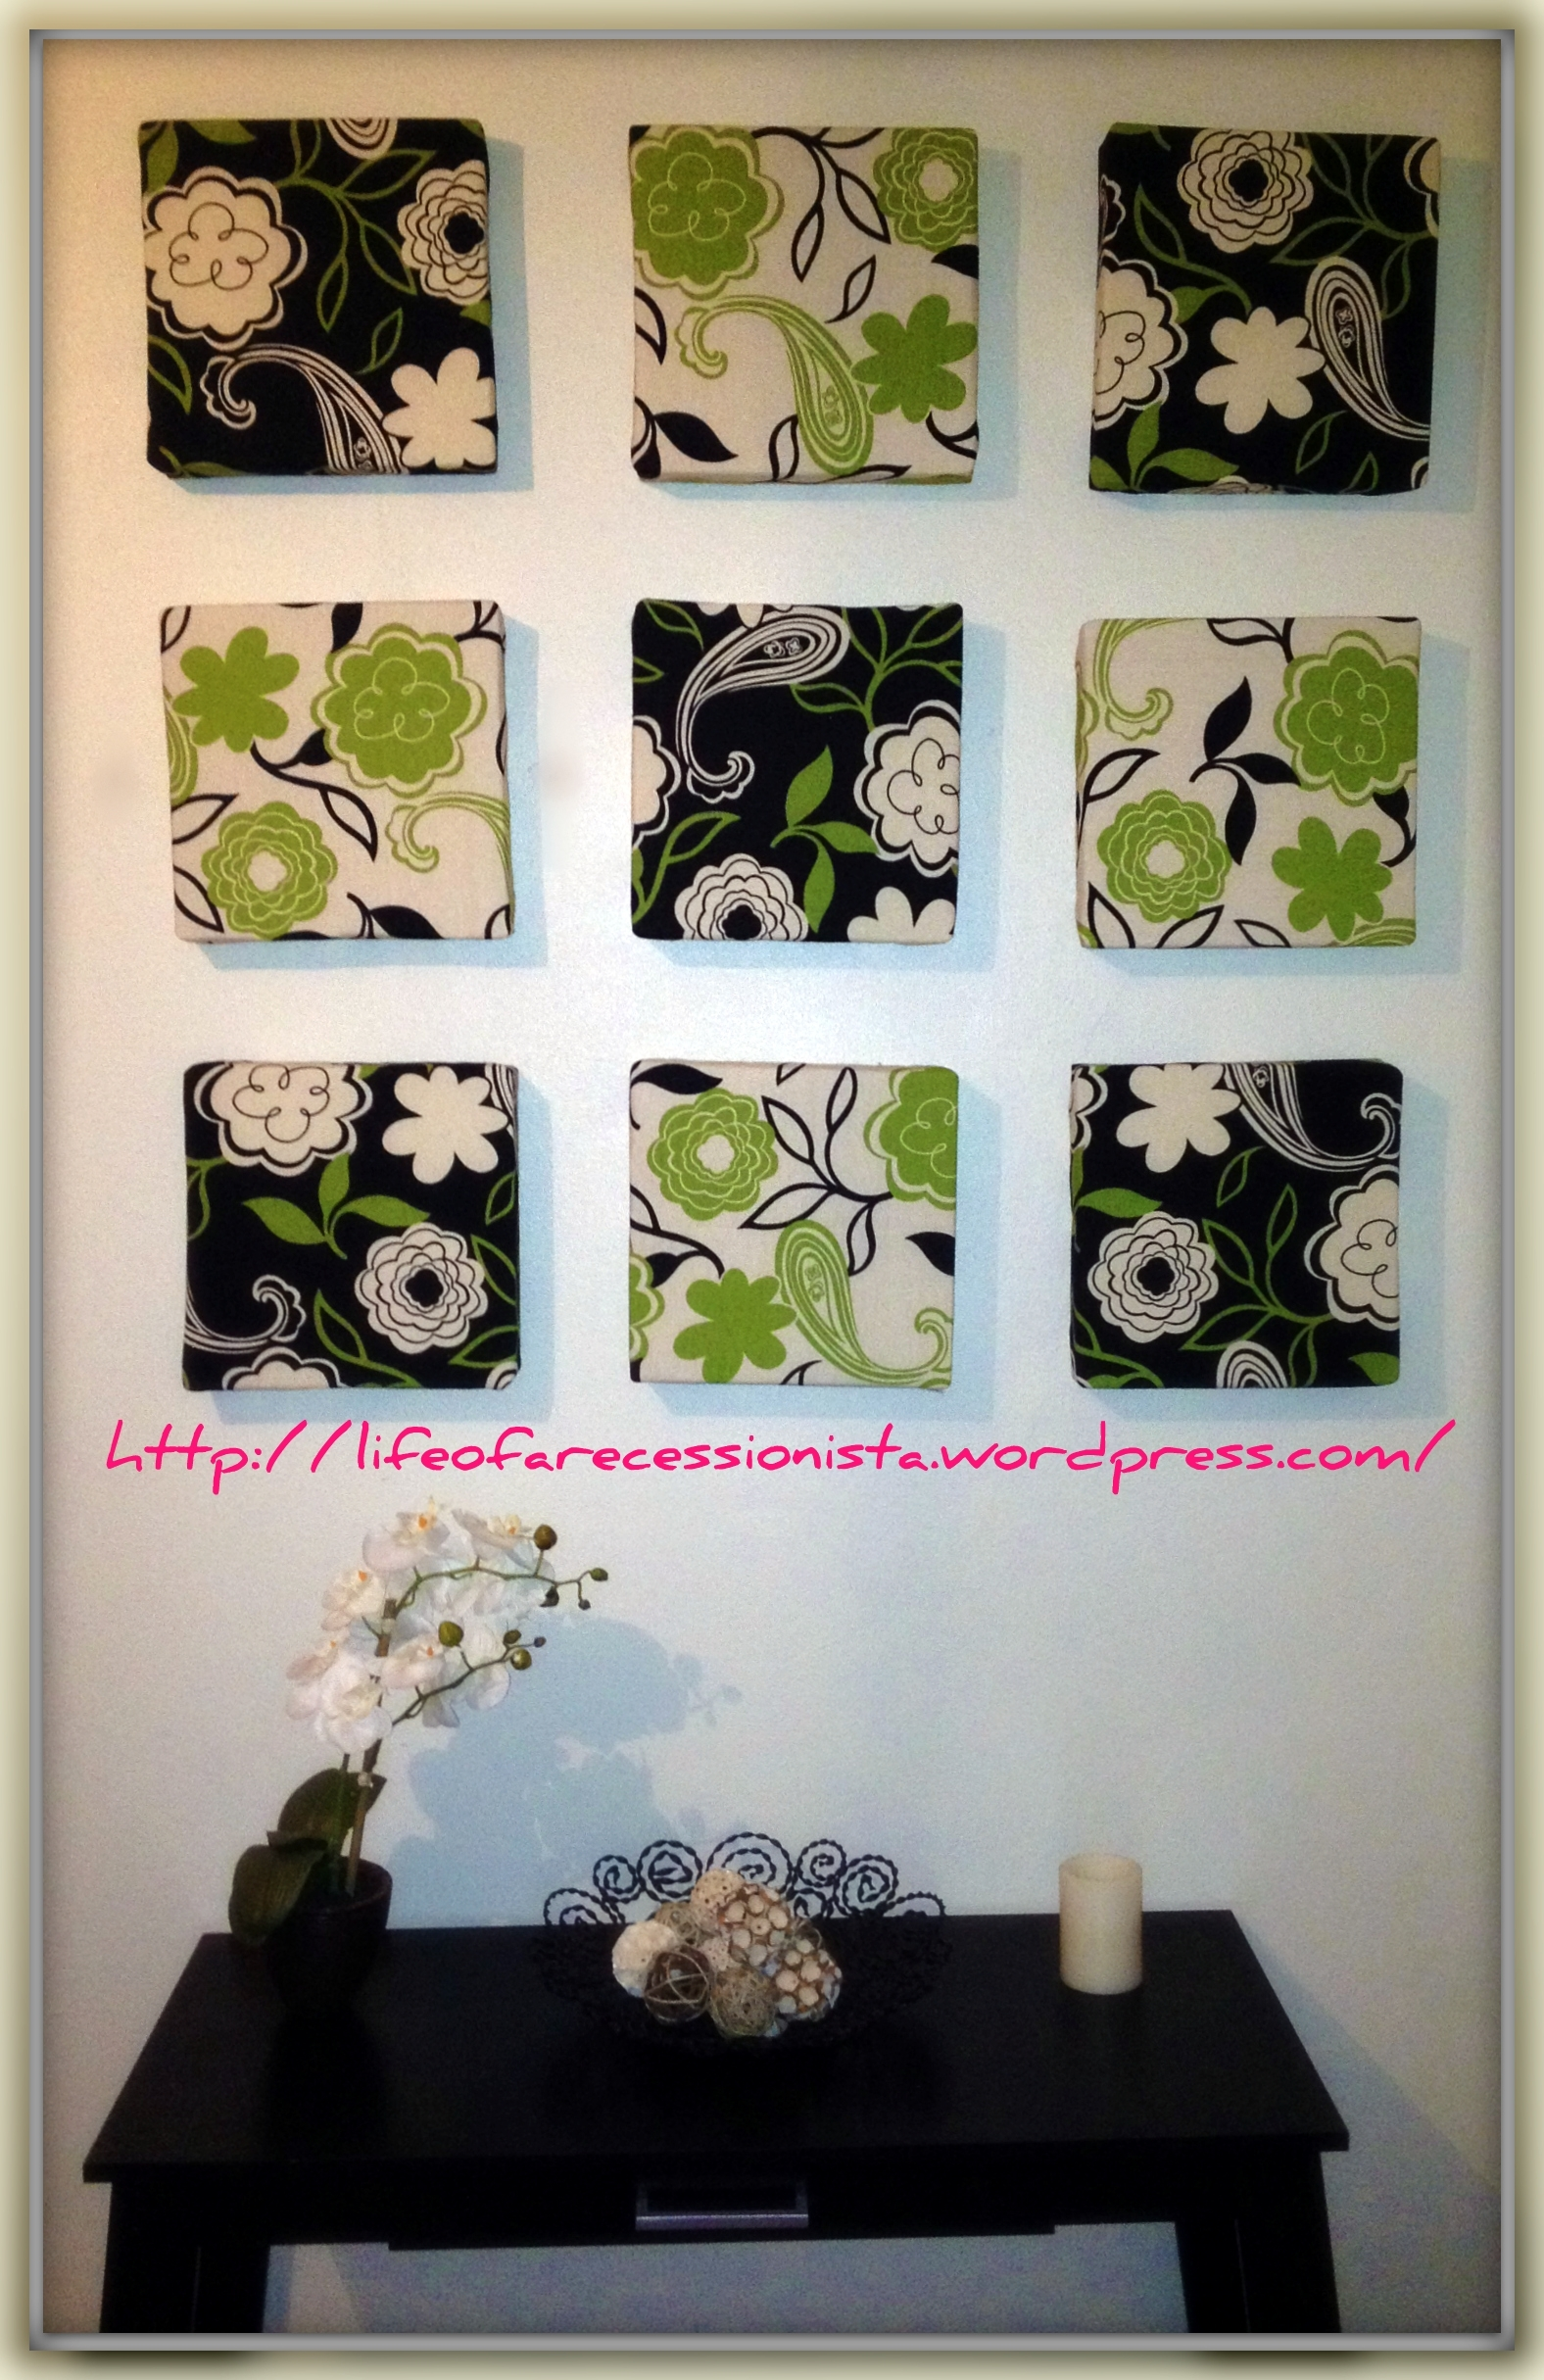 Wall Art | Life Of A Recessionista Pertaining To Most Current Fabric Covered Foam Wall Art (Gallery 10 of 15)